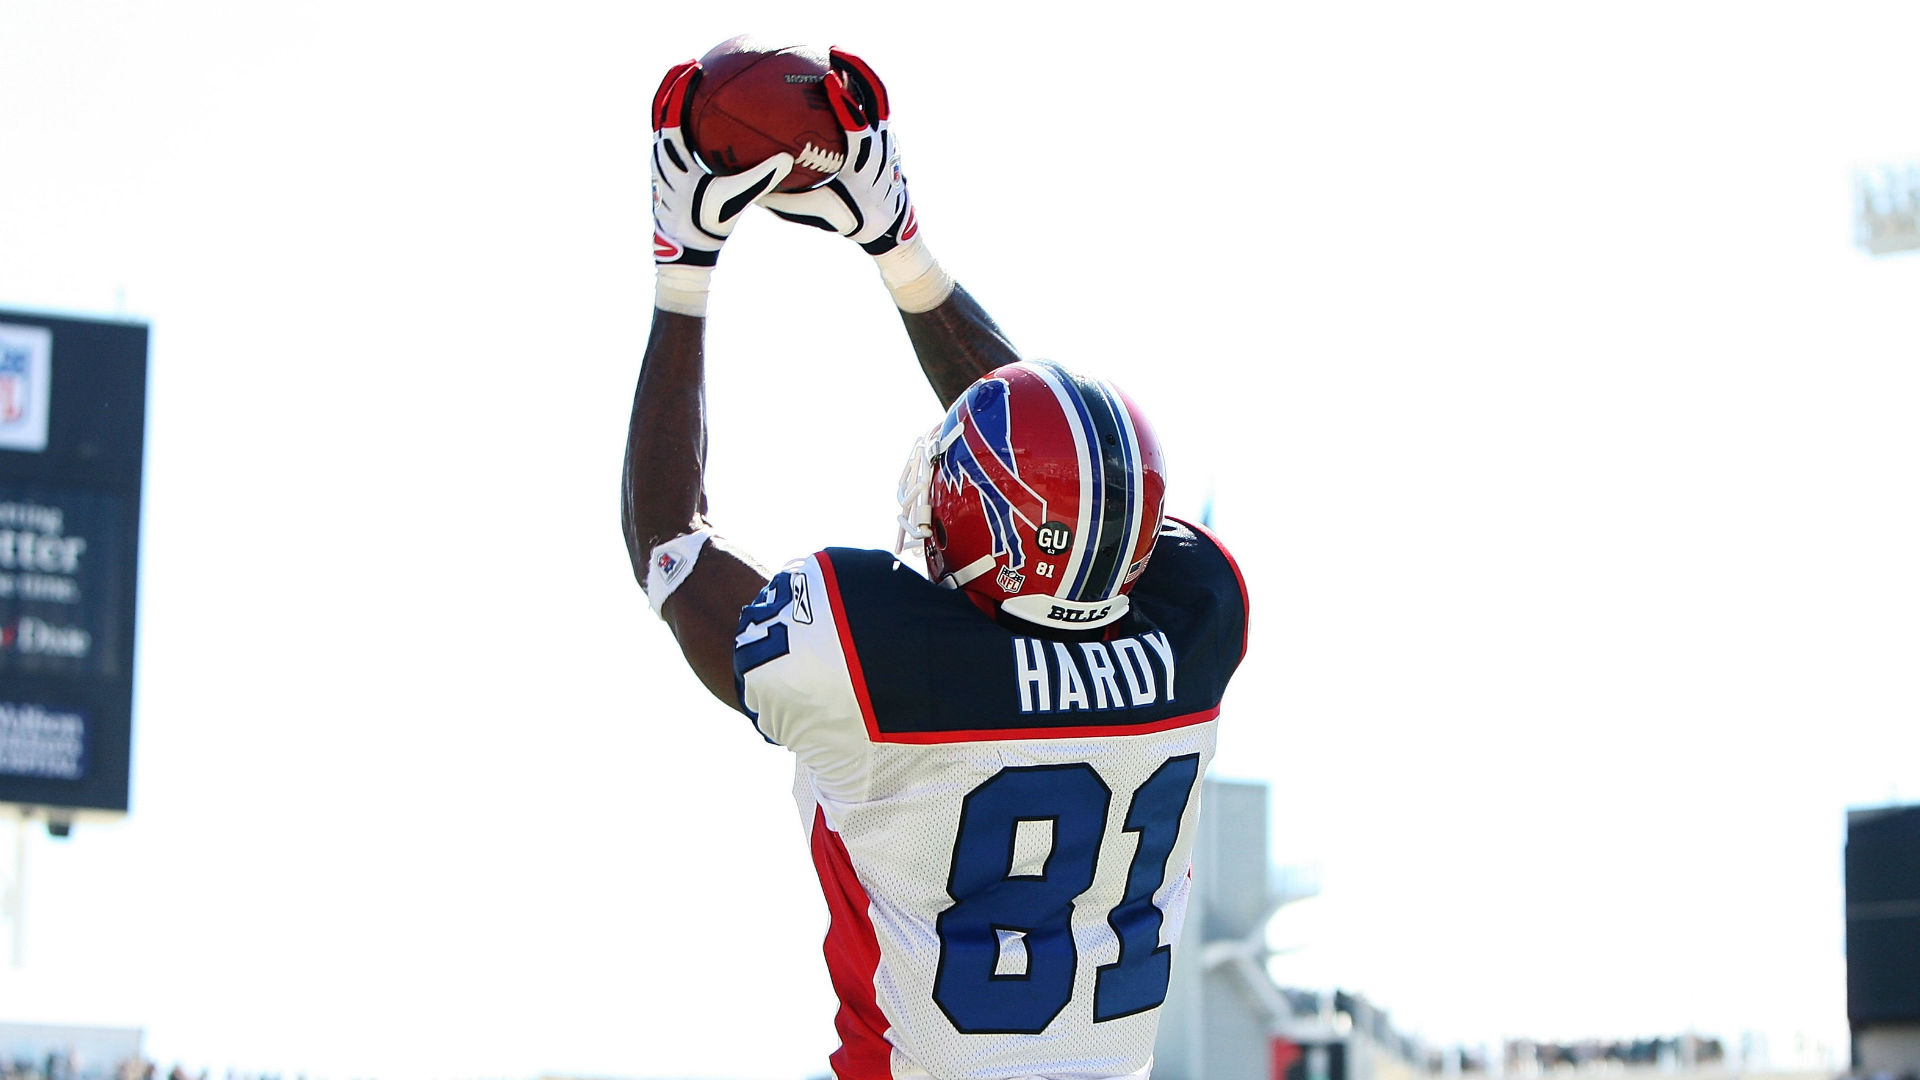 Former Bills WR James Hardy found dead in Indiana